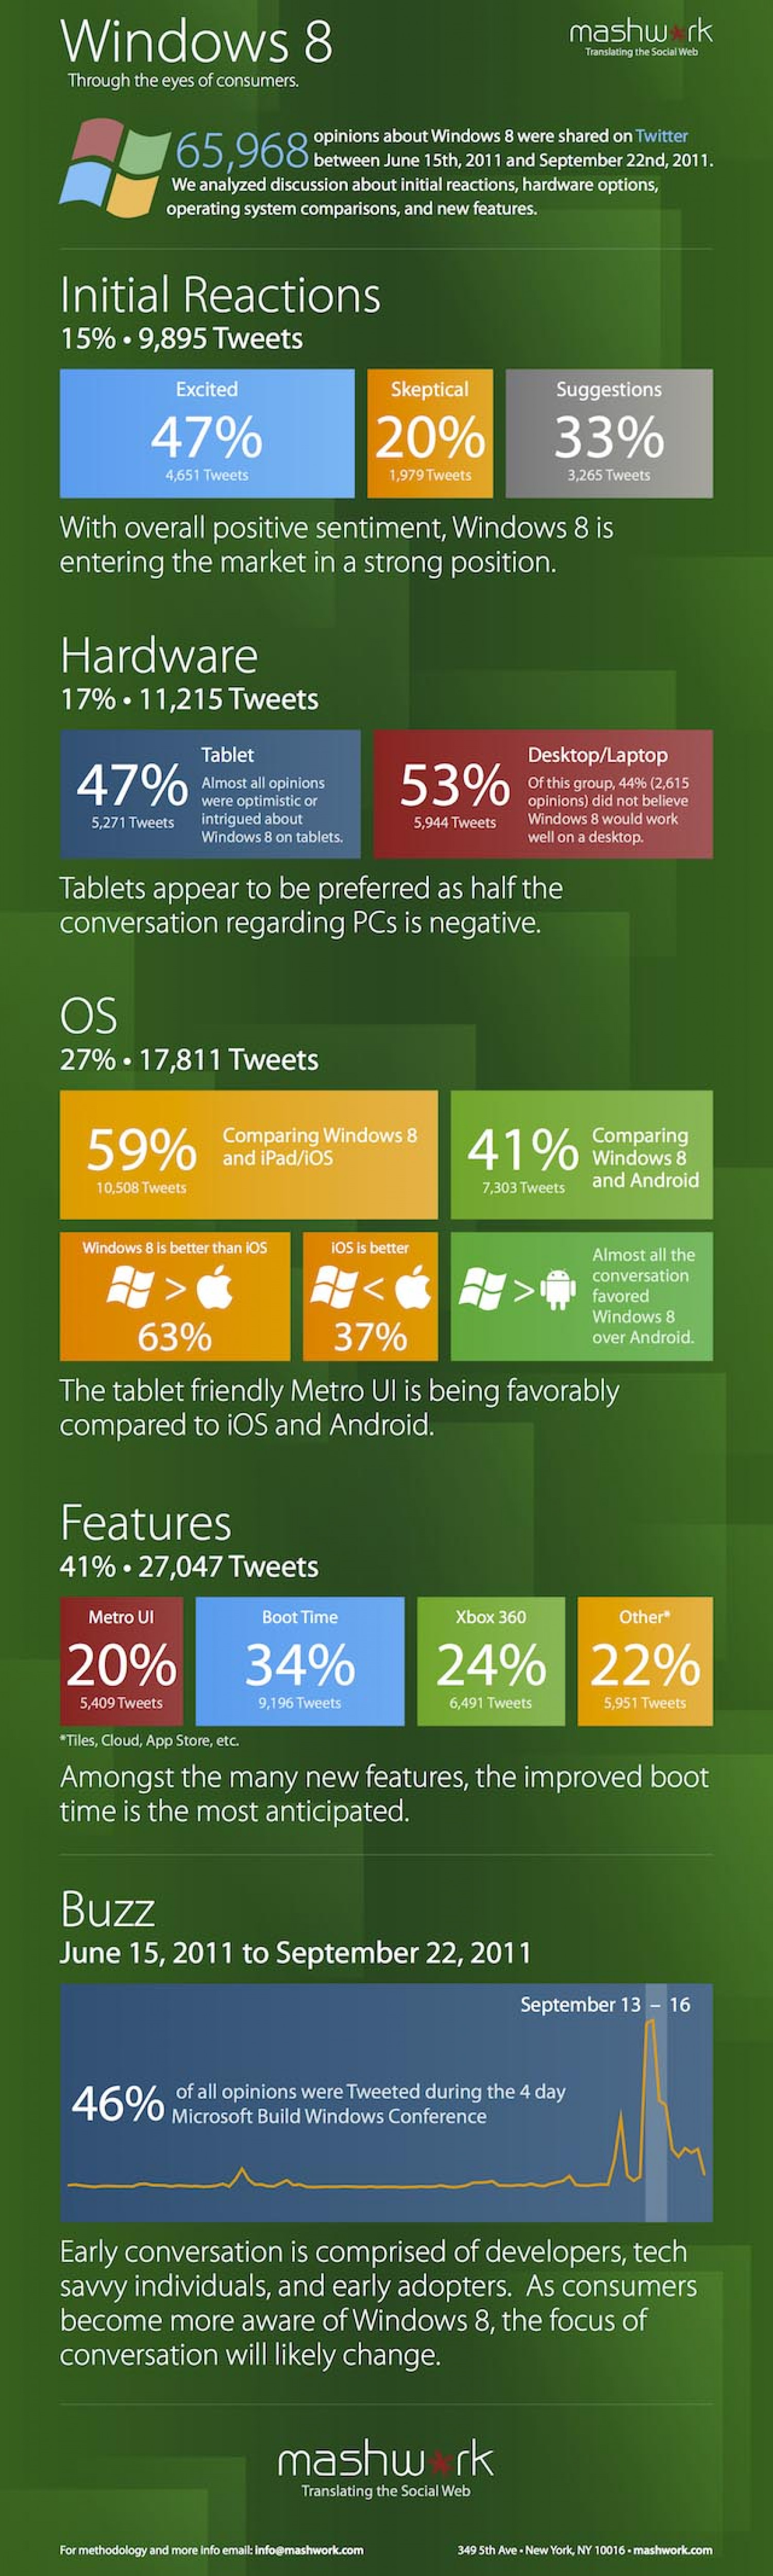 Positive Windows 8 Reaction Visualized Infographic